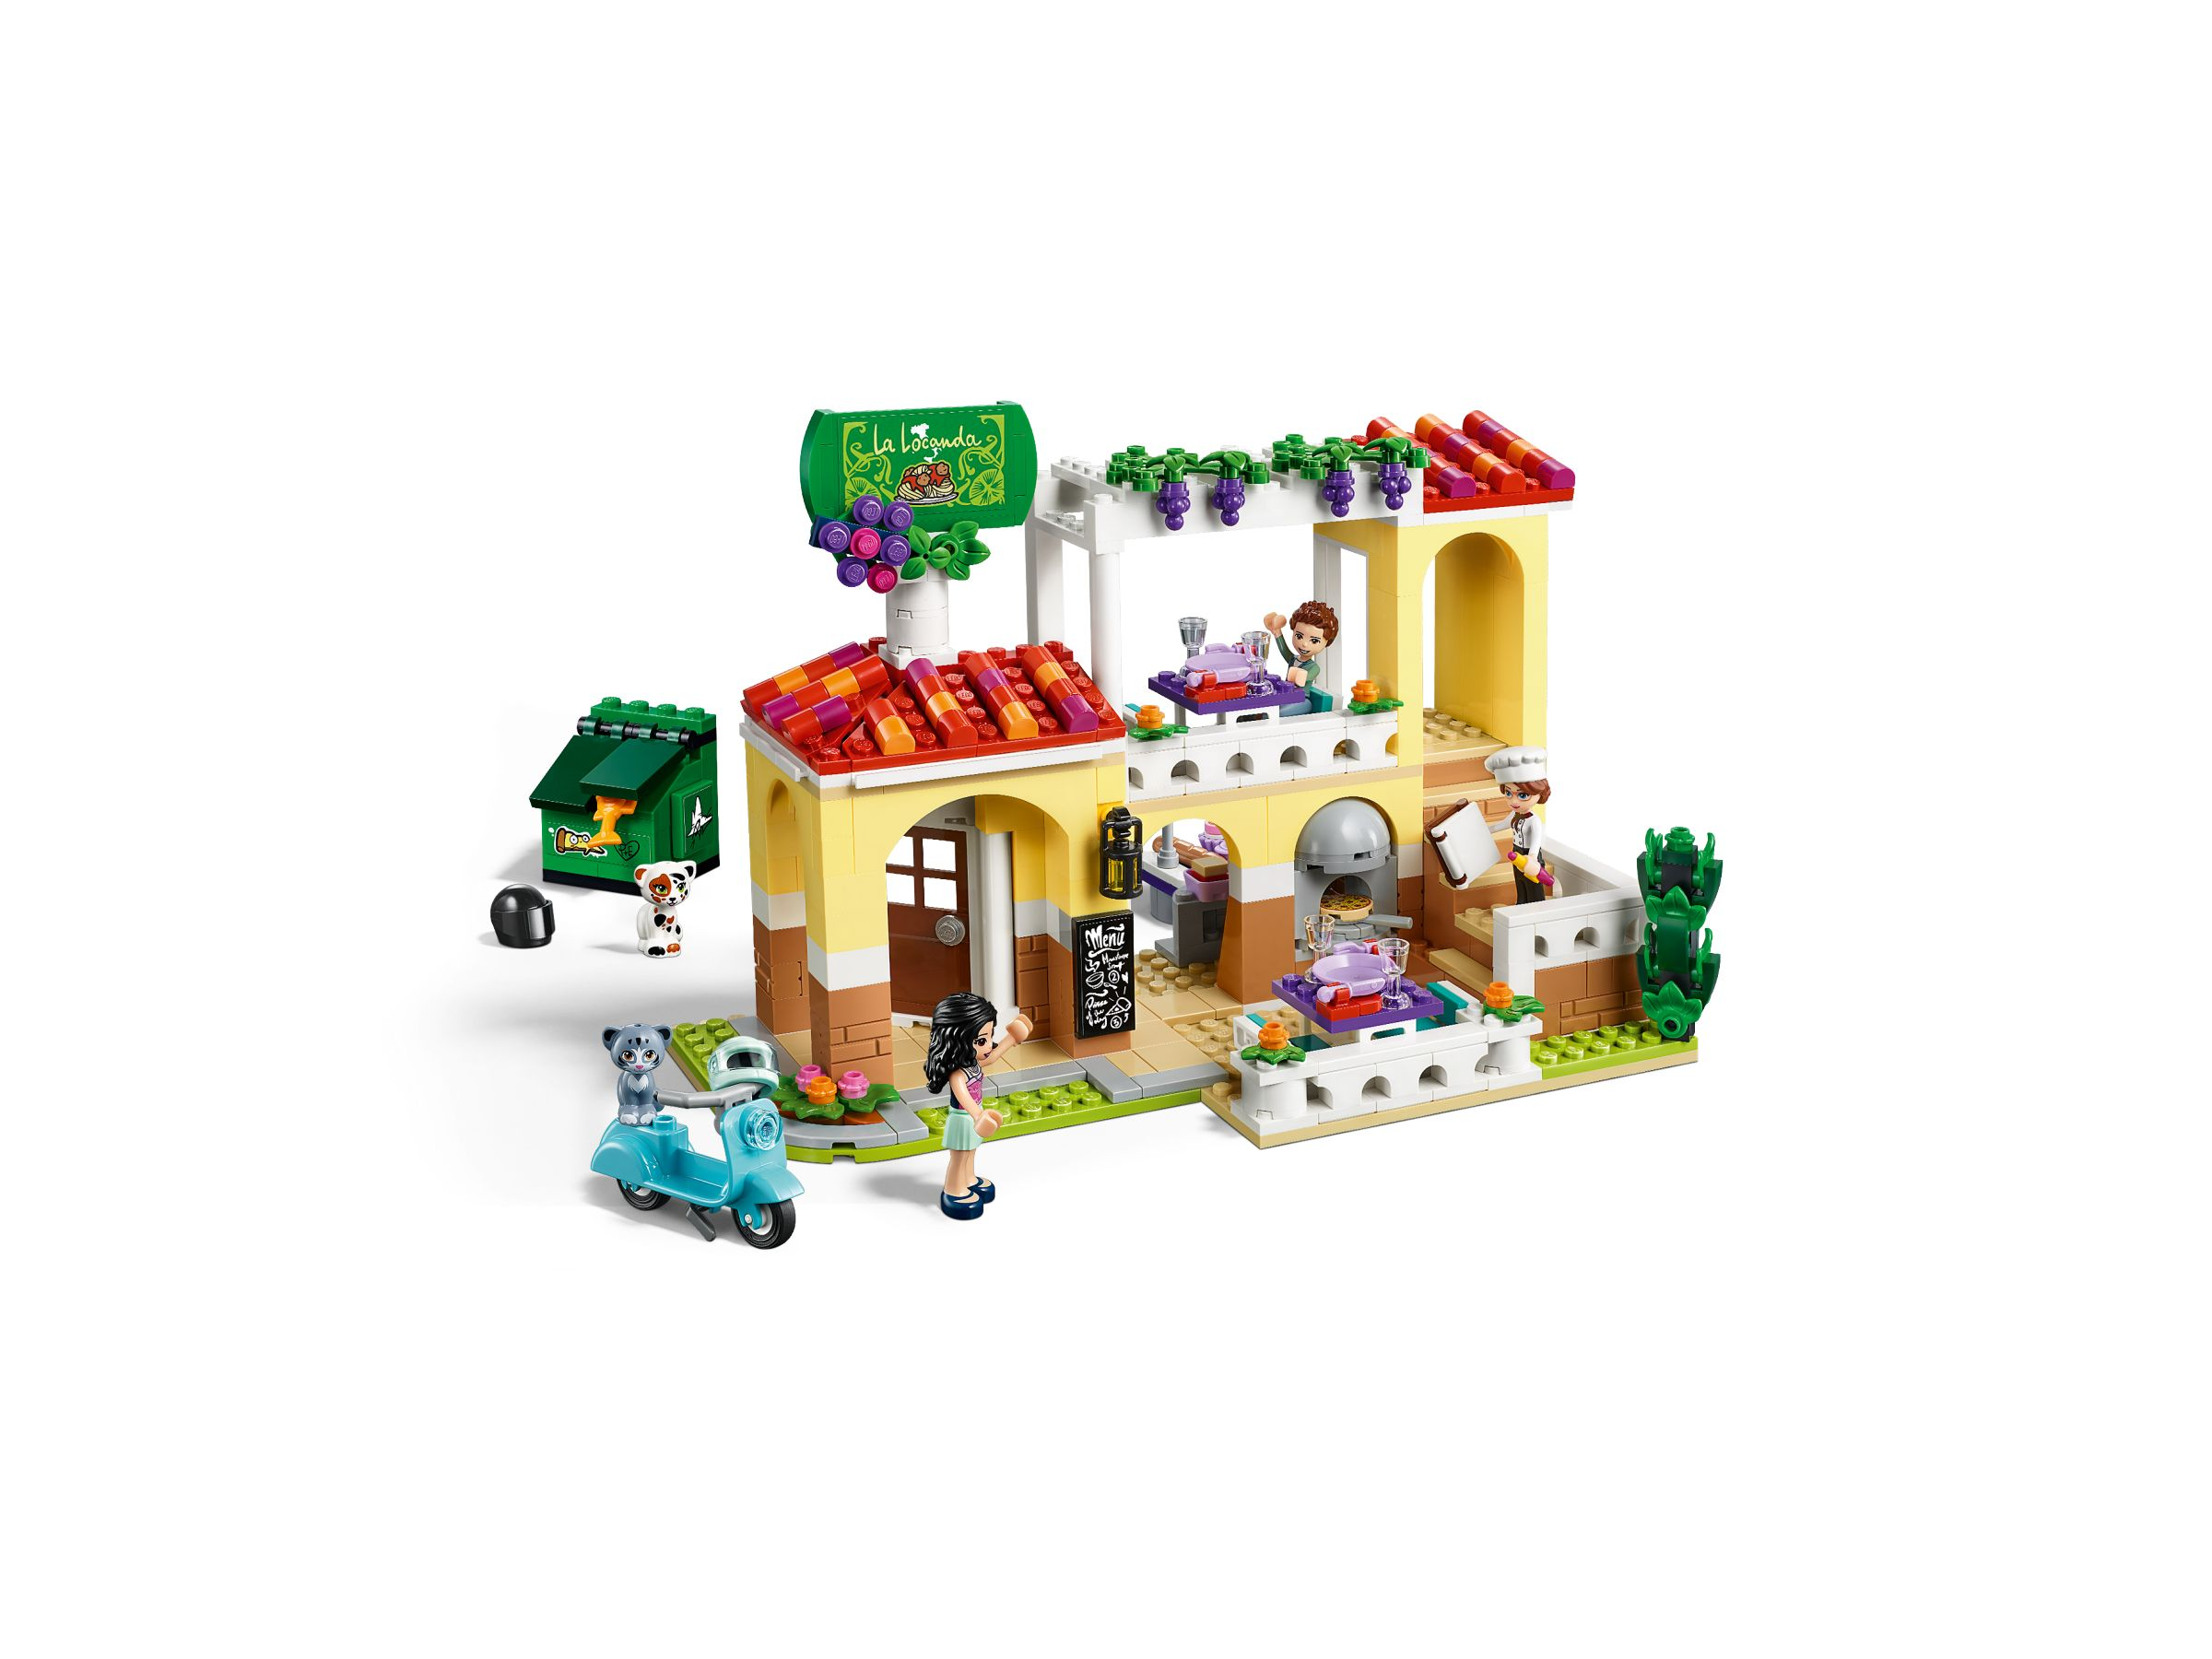 LEGO Friends 41379 Heartlake City Restaurant LEGO_41379_alt2.jpg